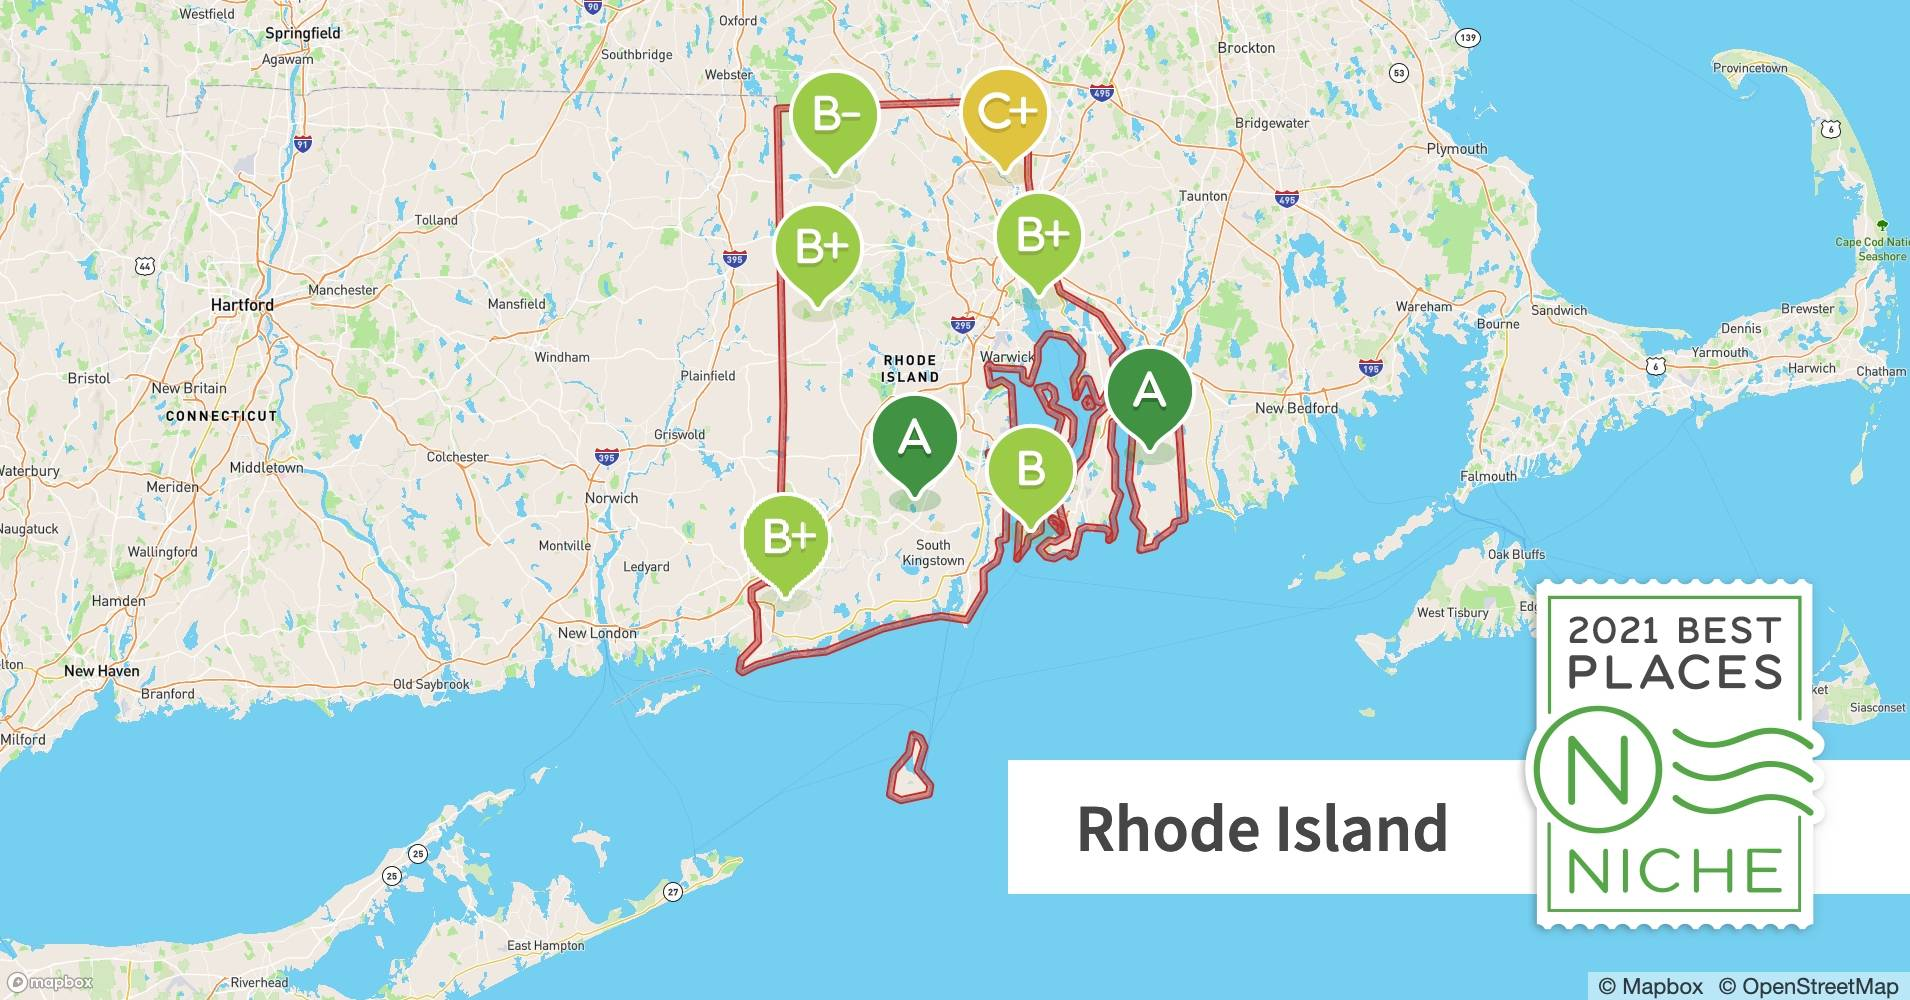 2021 Best Places To Live In Rhode Island Niche